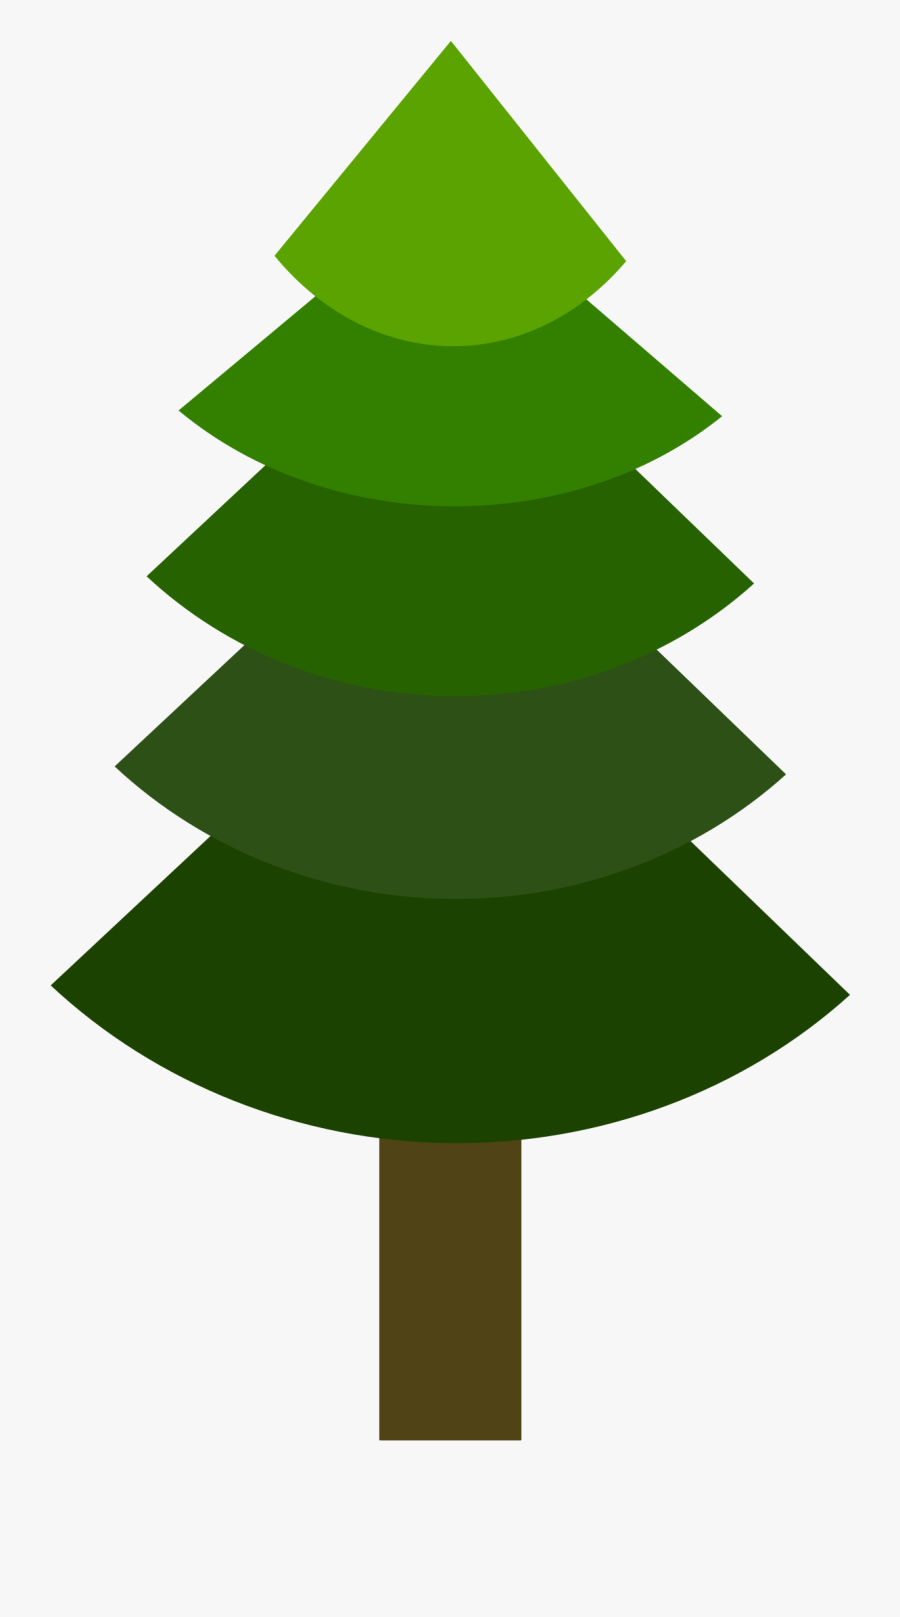 Tree- Pine Or Geometric, Green Hues, Flat Yet 3d Banner - Christmas Tree, Transparent Clipart